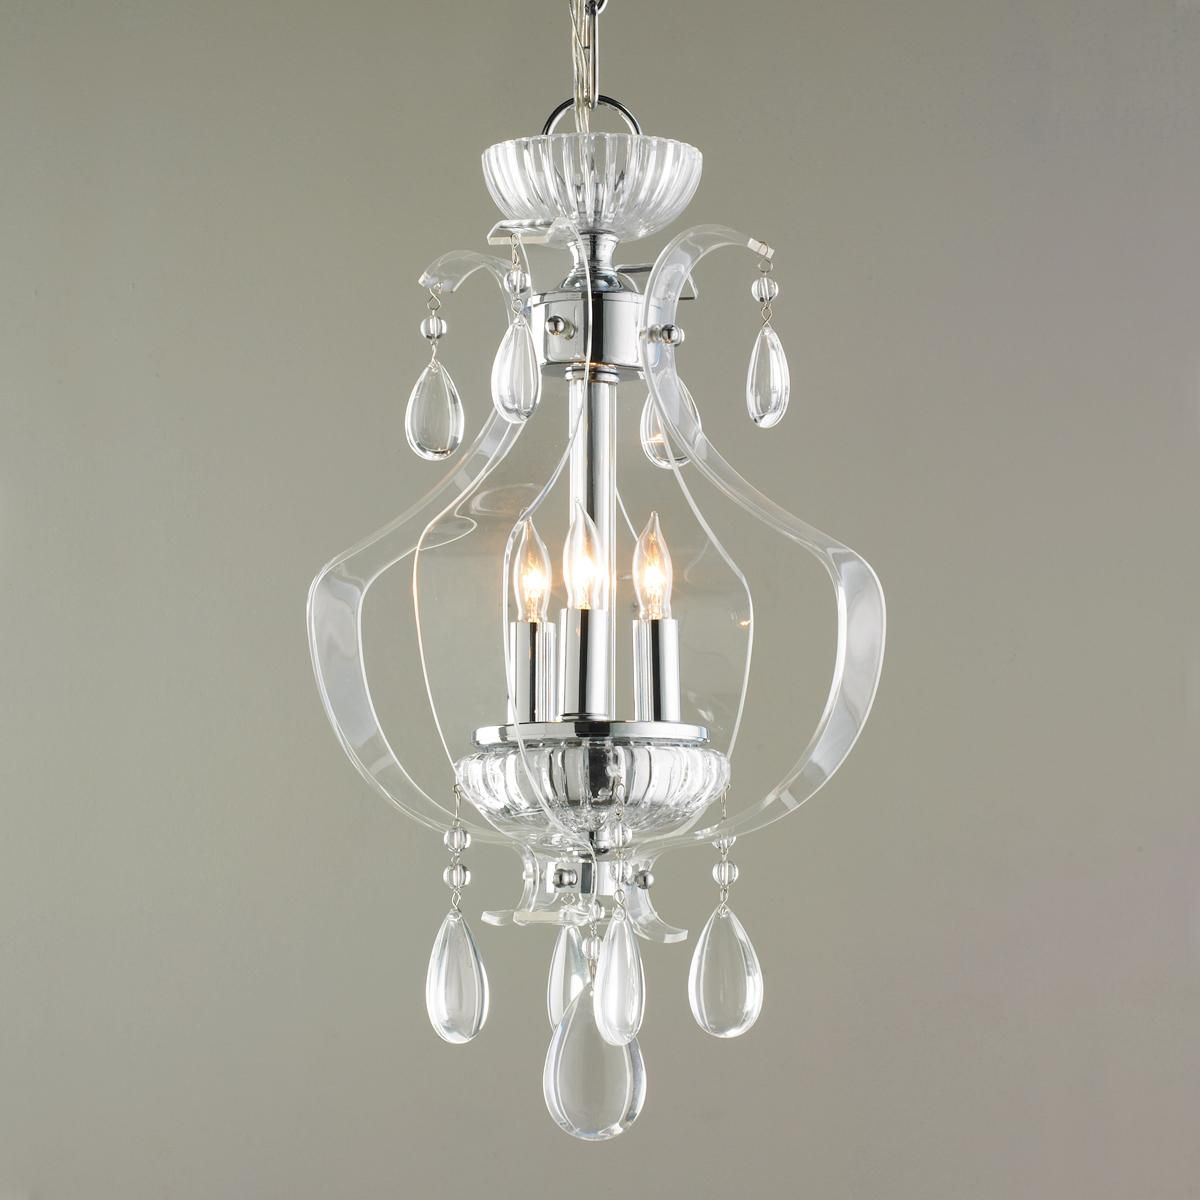 Small Chandeliers For Dining Room: Crystal And Acrylic Mini Chandelier